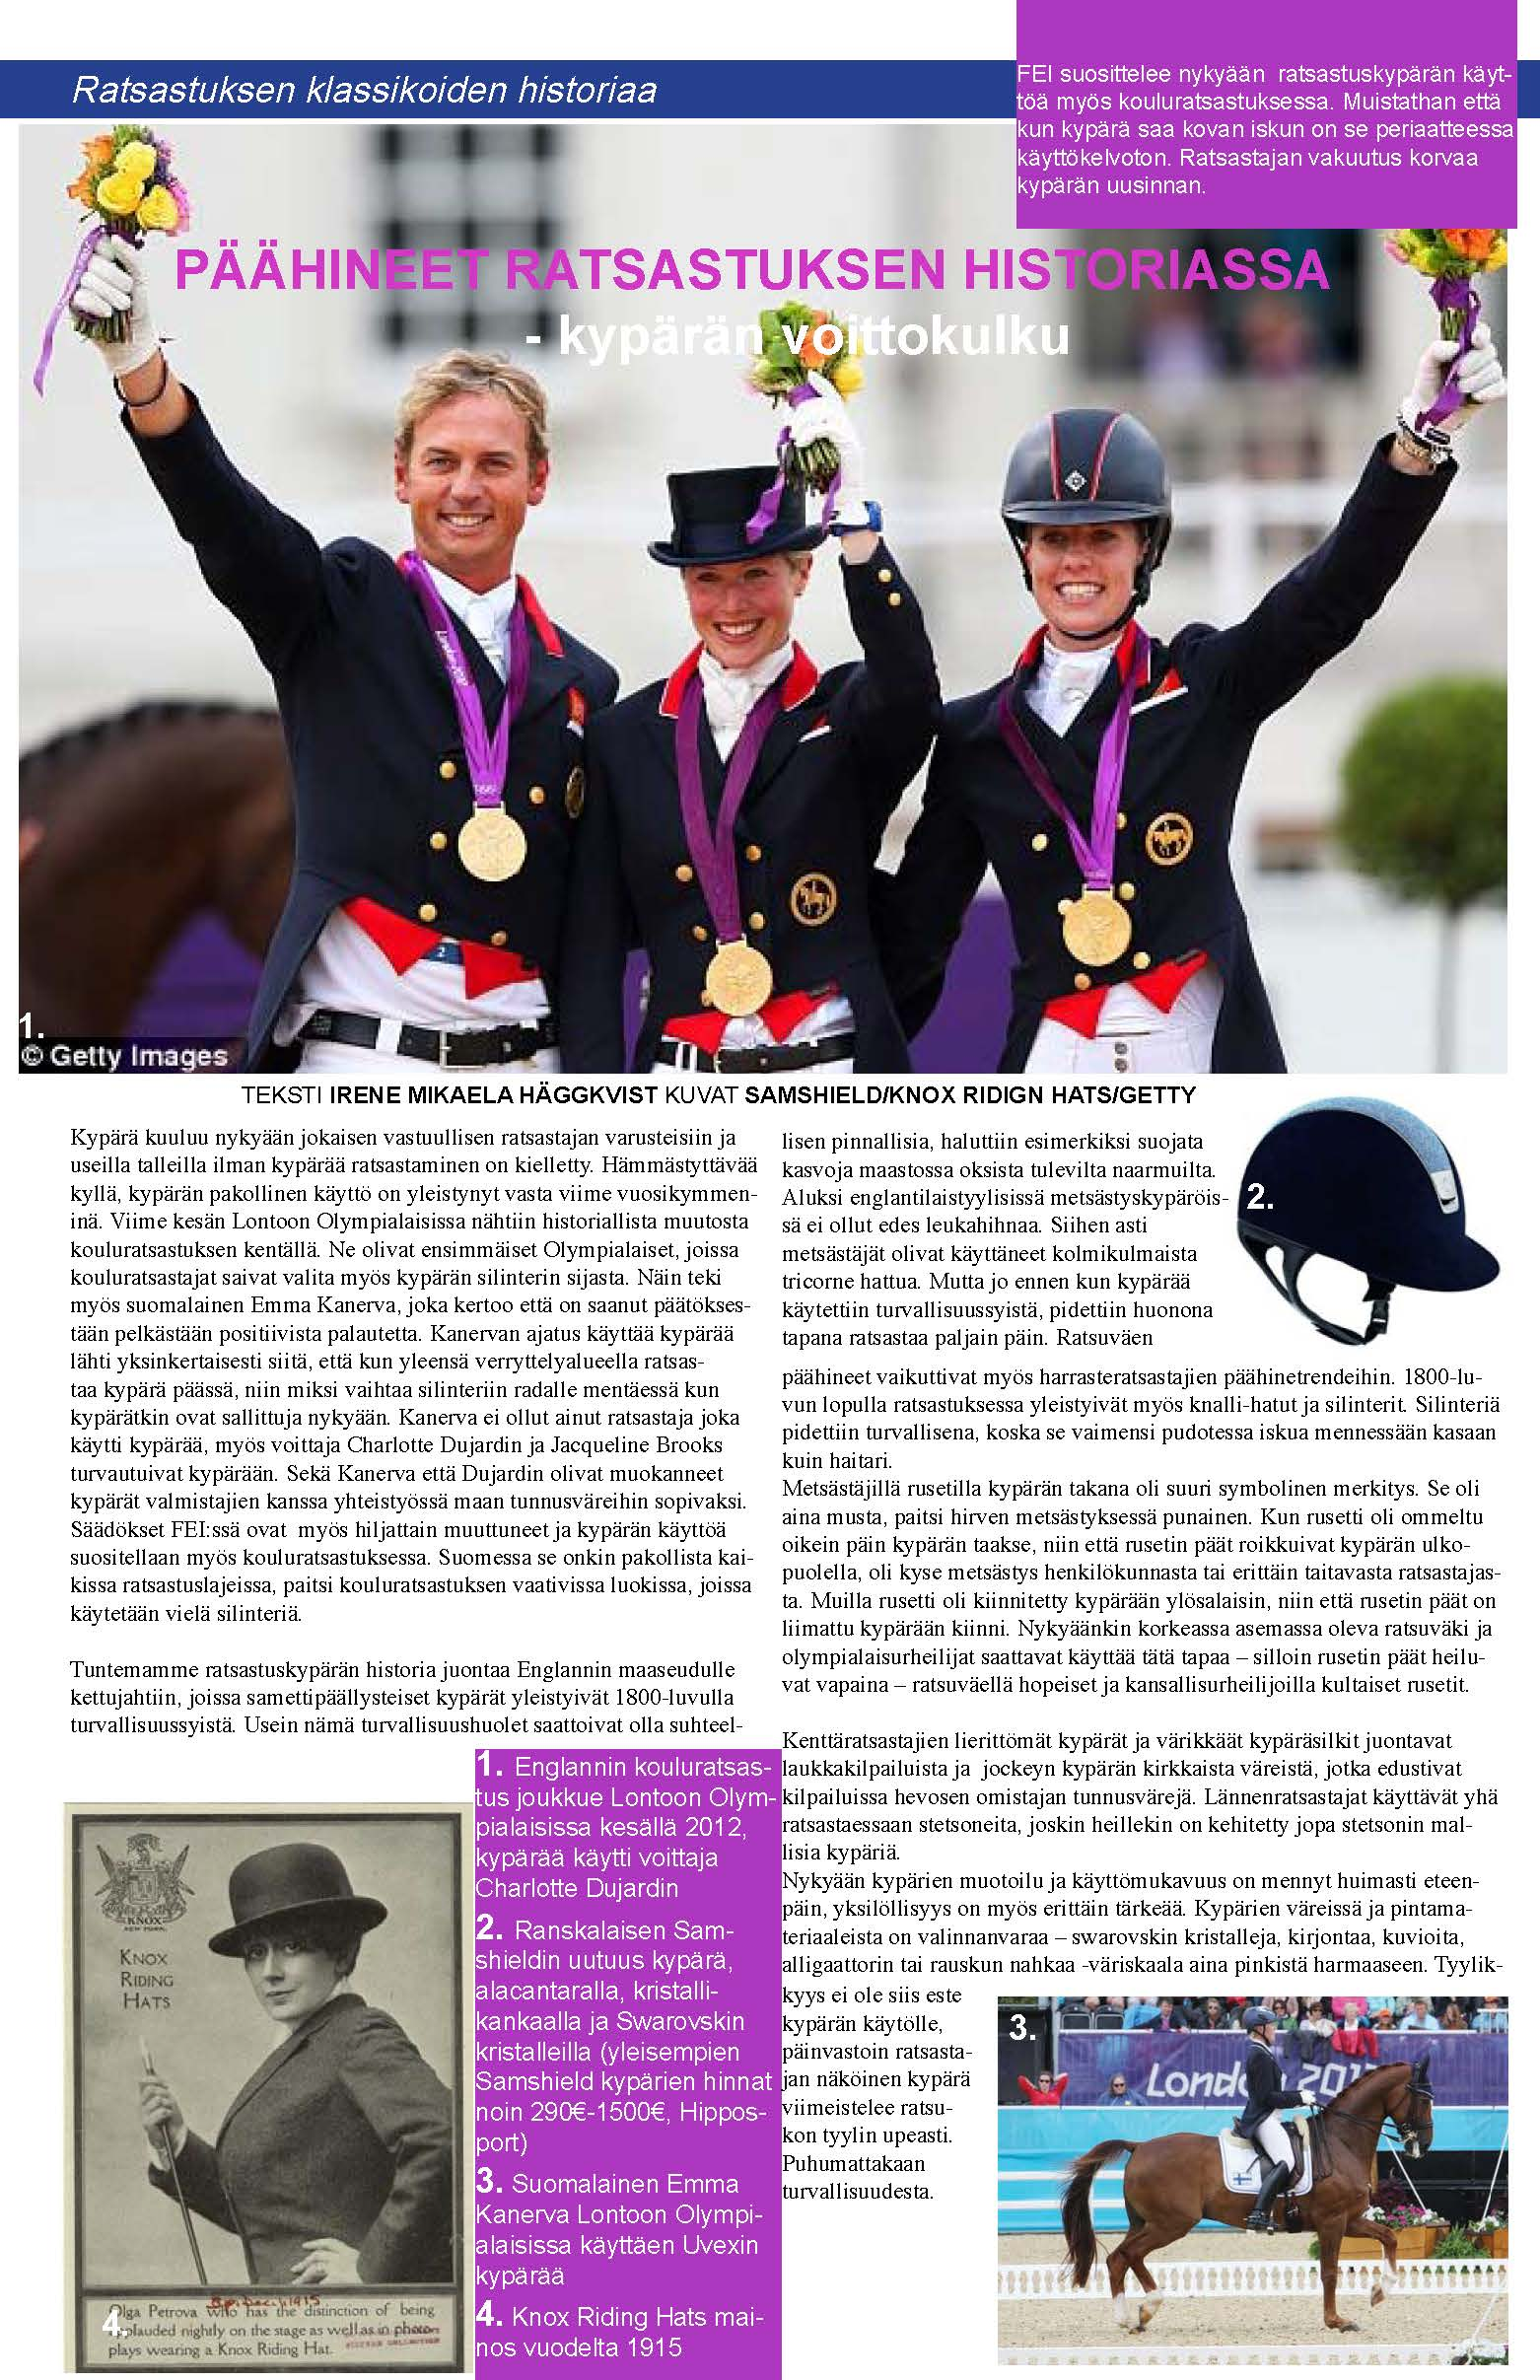 Irene Mikaela Häggkvist as a columnist for the Hippos magazine (The Equestrian Federation of Finland) about the history of riding apparel. History of the riding helmet, April 26th 2013.